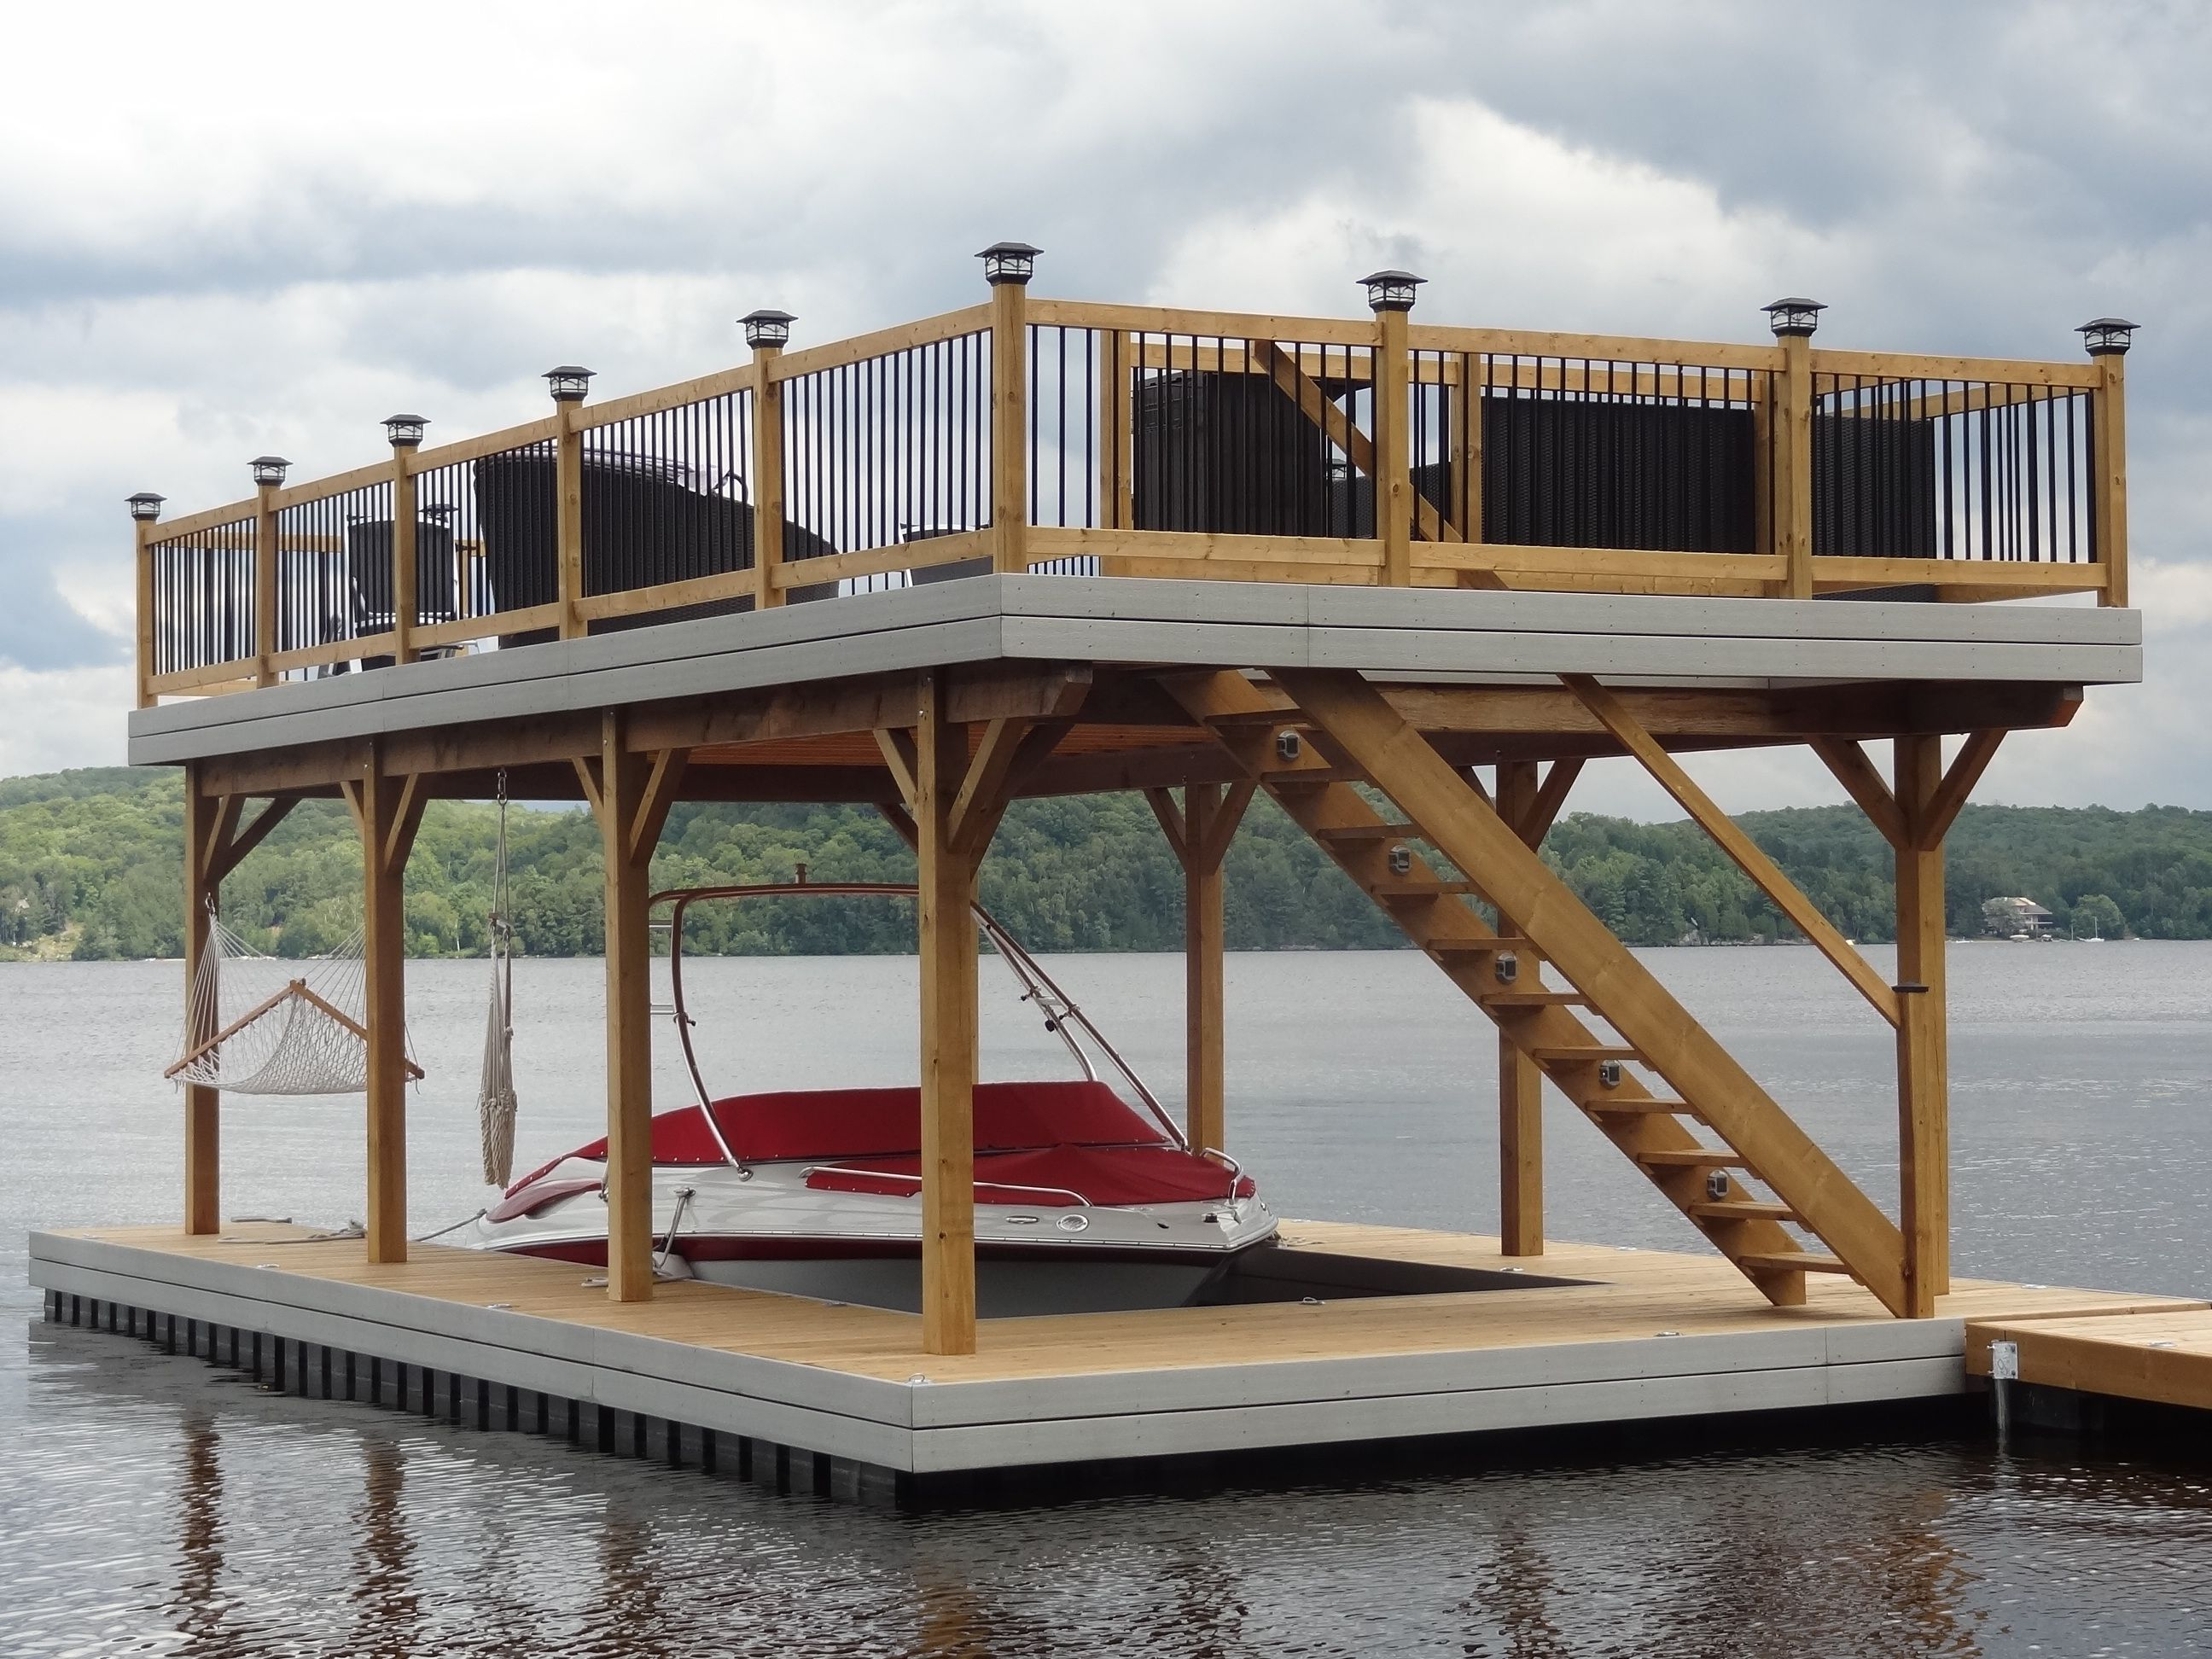 lets see your boat dock page 67 teamtalk boat docks pinterest boat dock boating. Black Bedroom Furniture Sets. Home Design Ideas